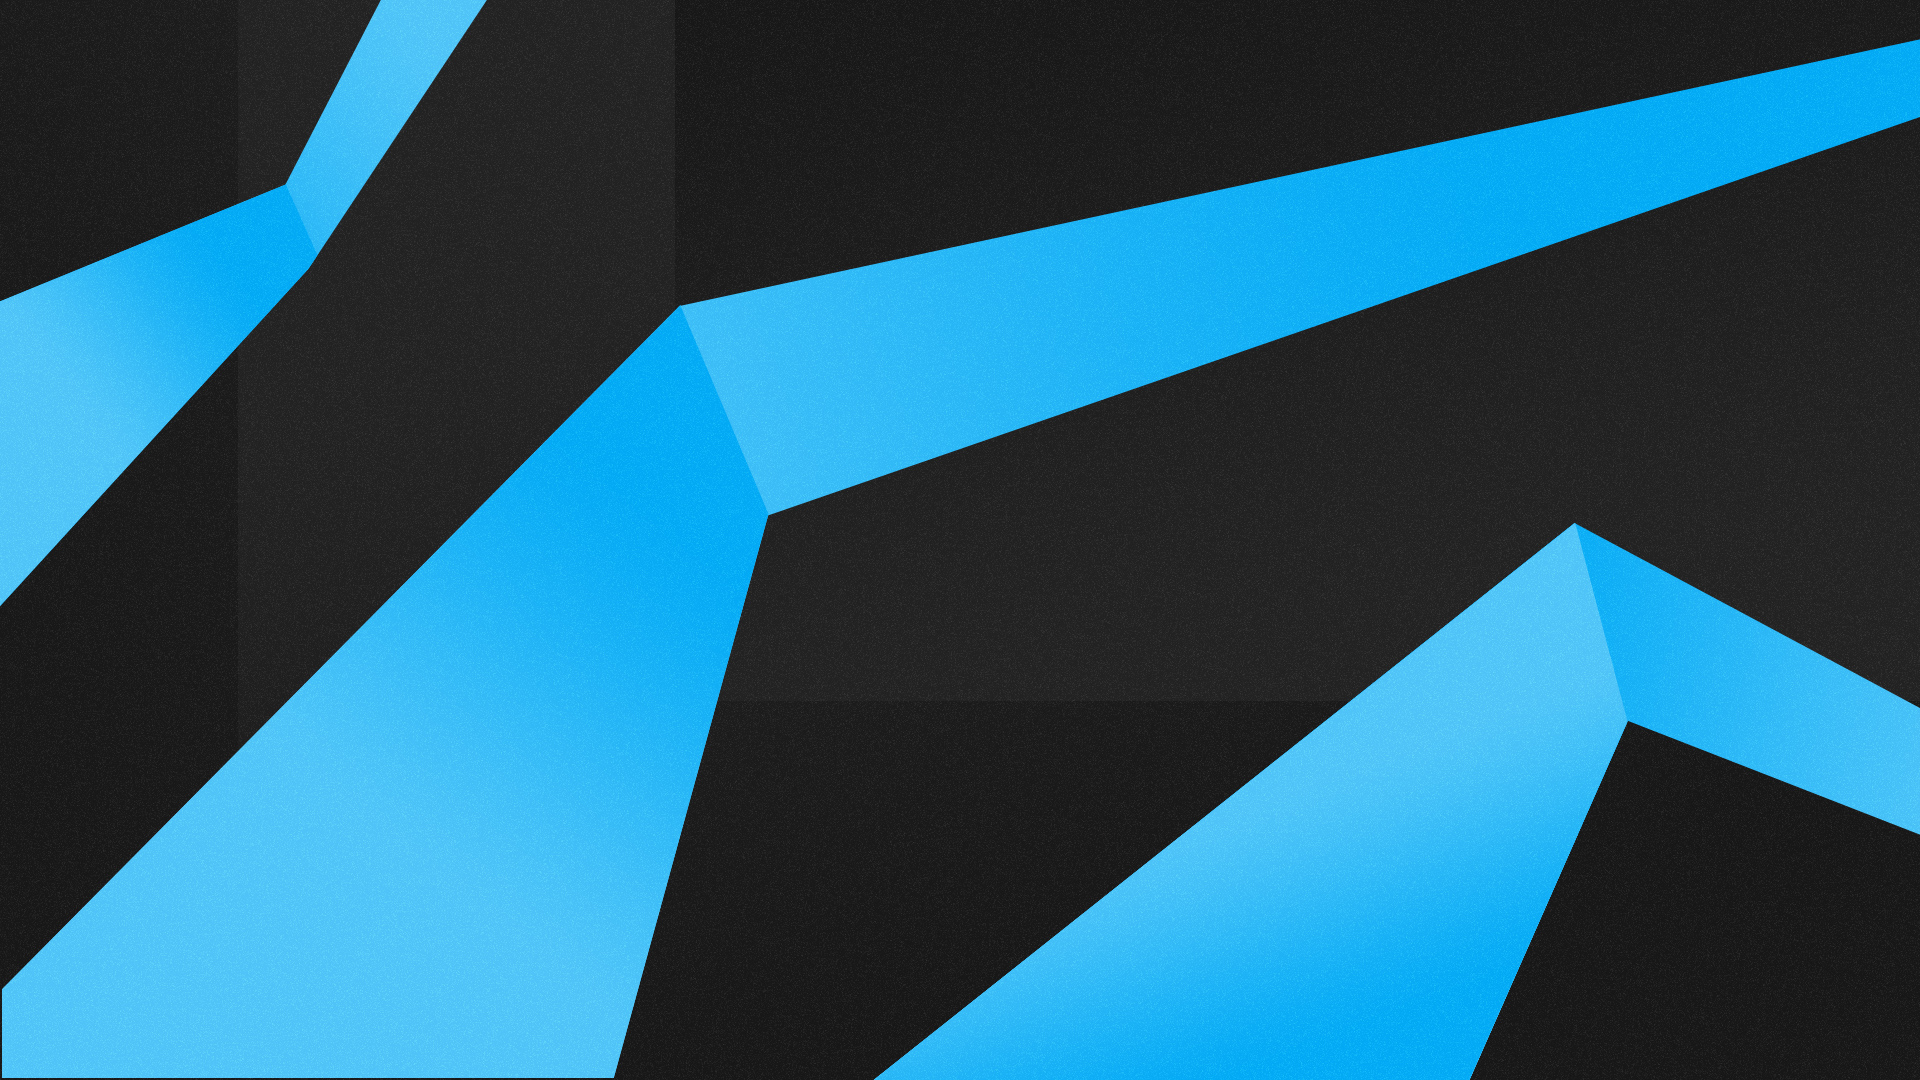 blue geometric wallpaper minimalistic - photo #1